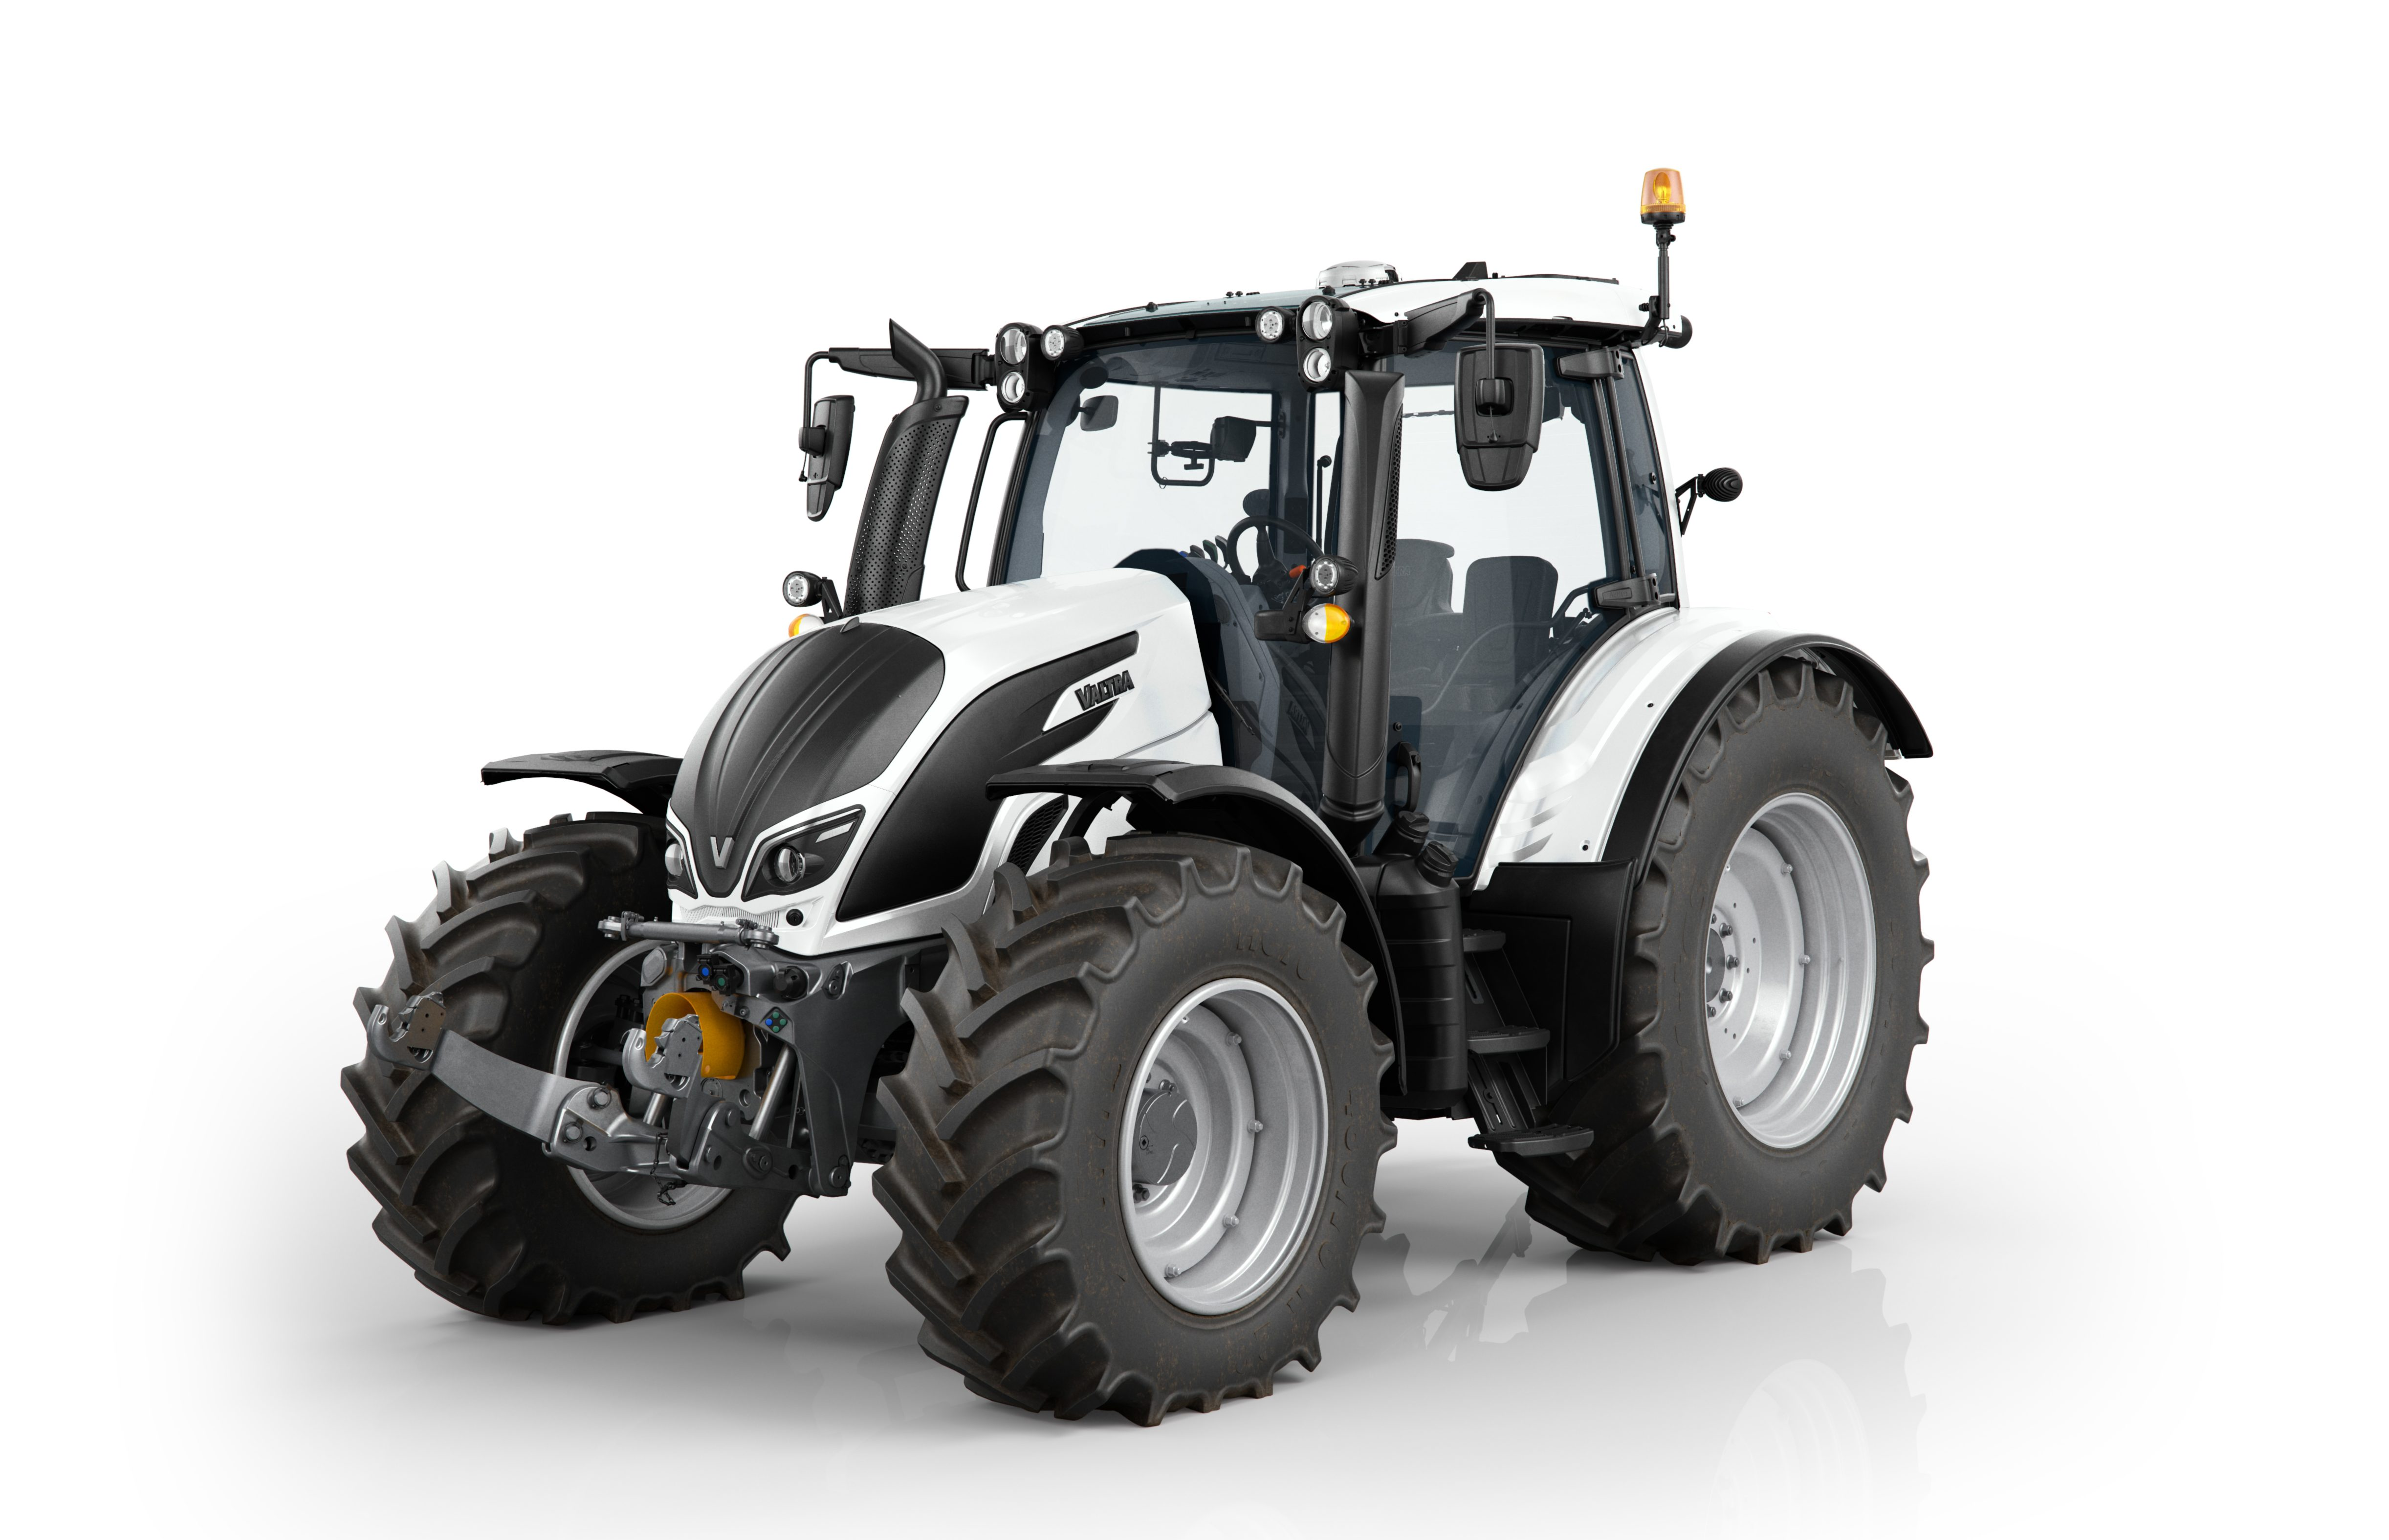 Tractor Transmission System : W engine oil suitable for valtra tractors midlands